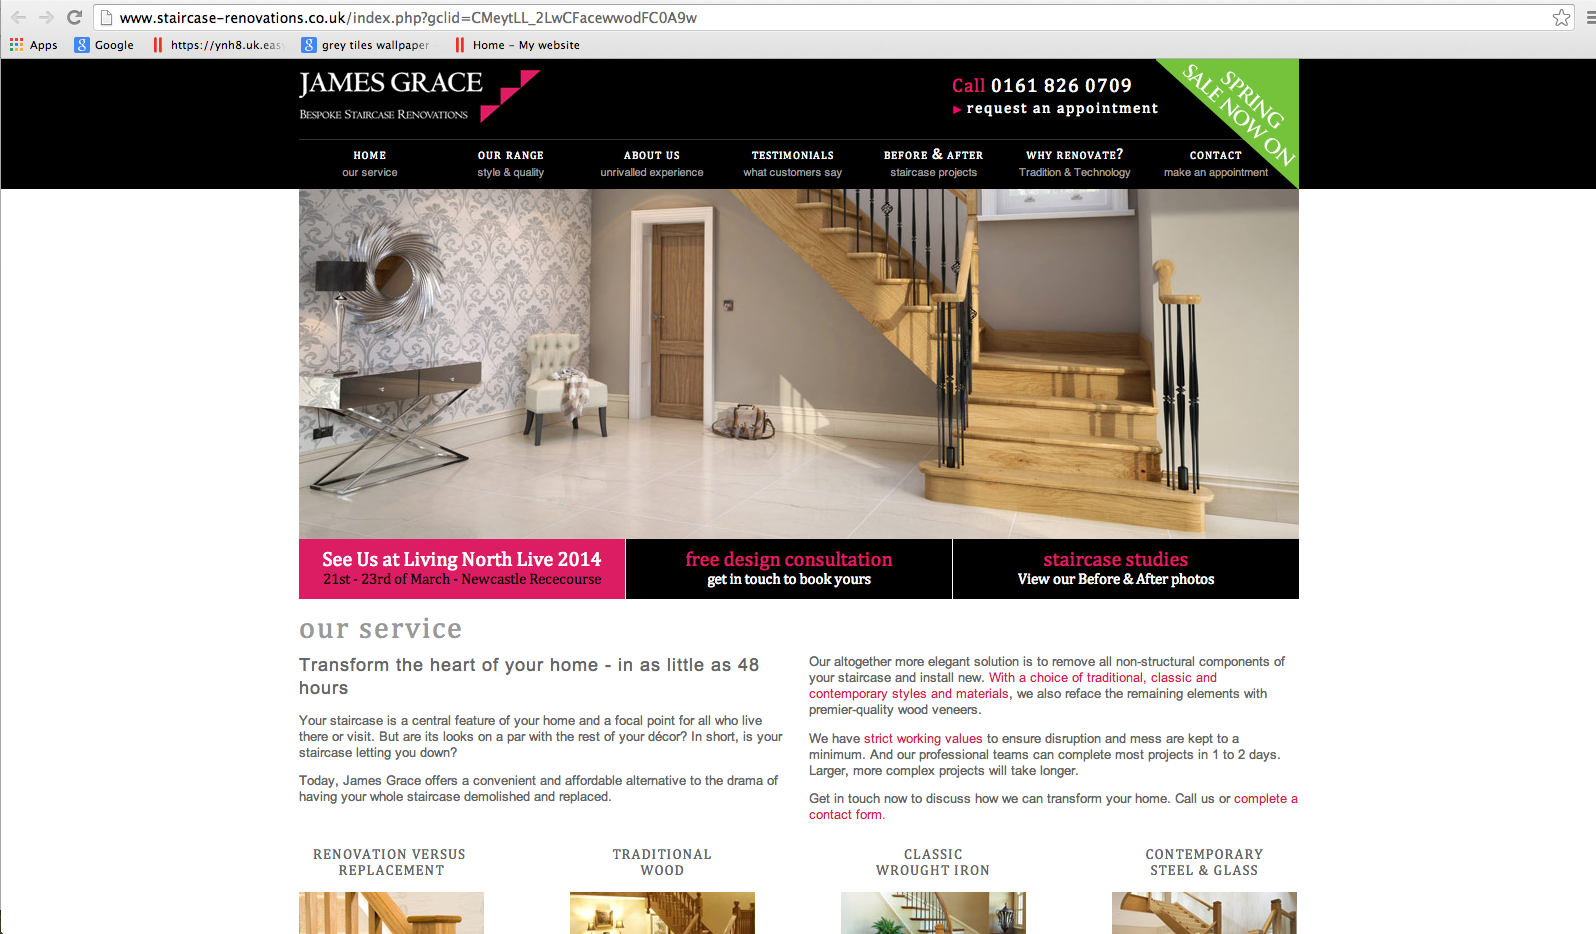 Staircase Renovations Website Review